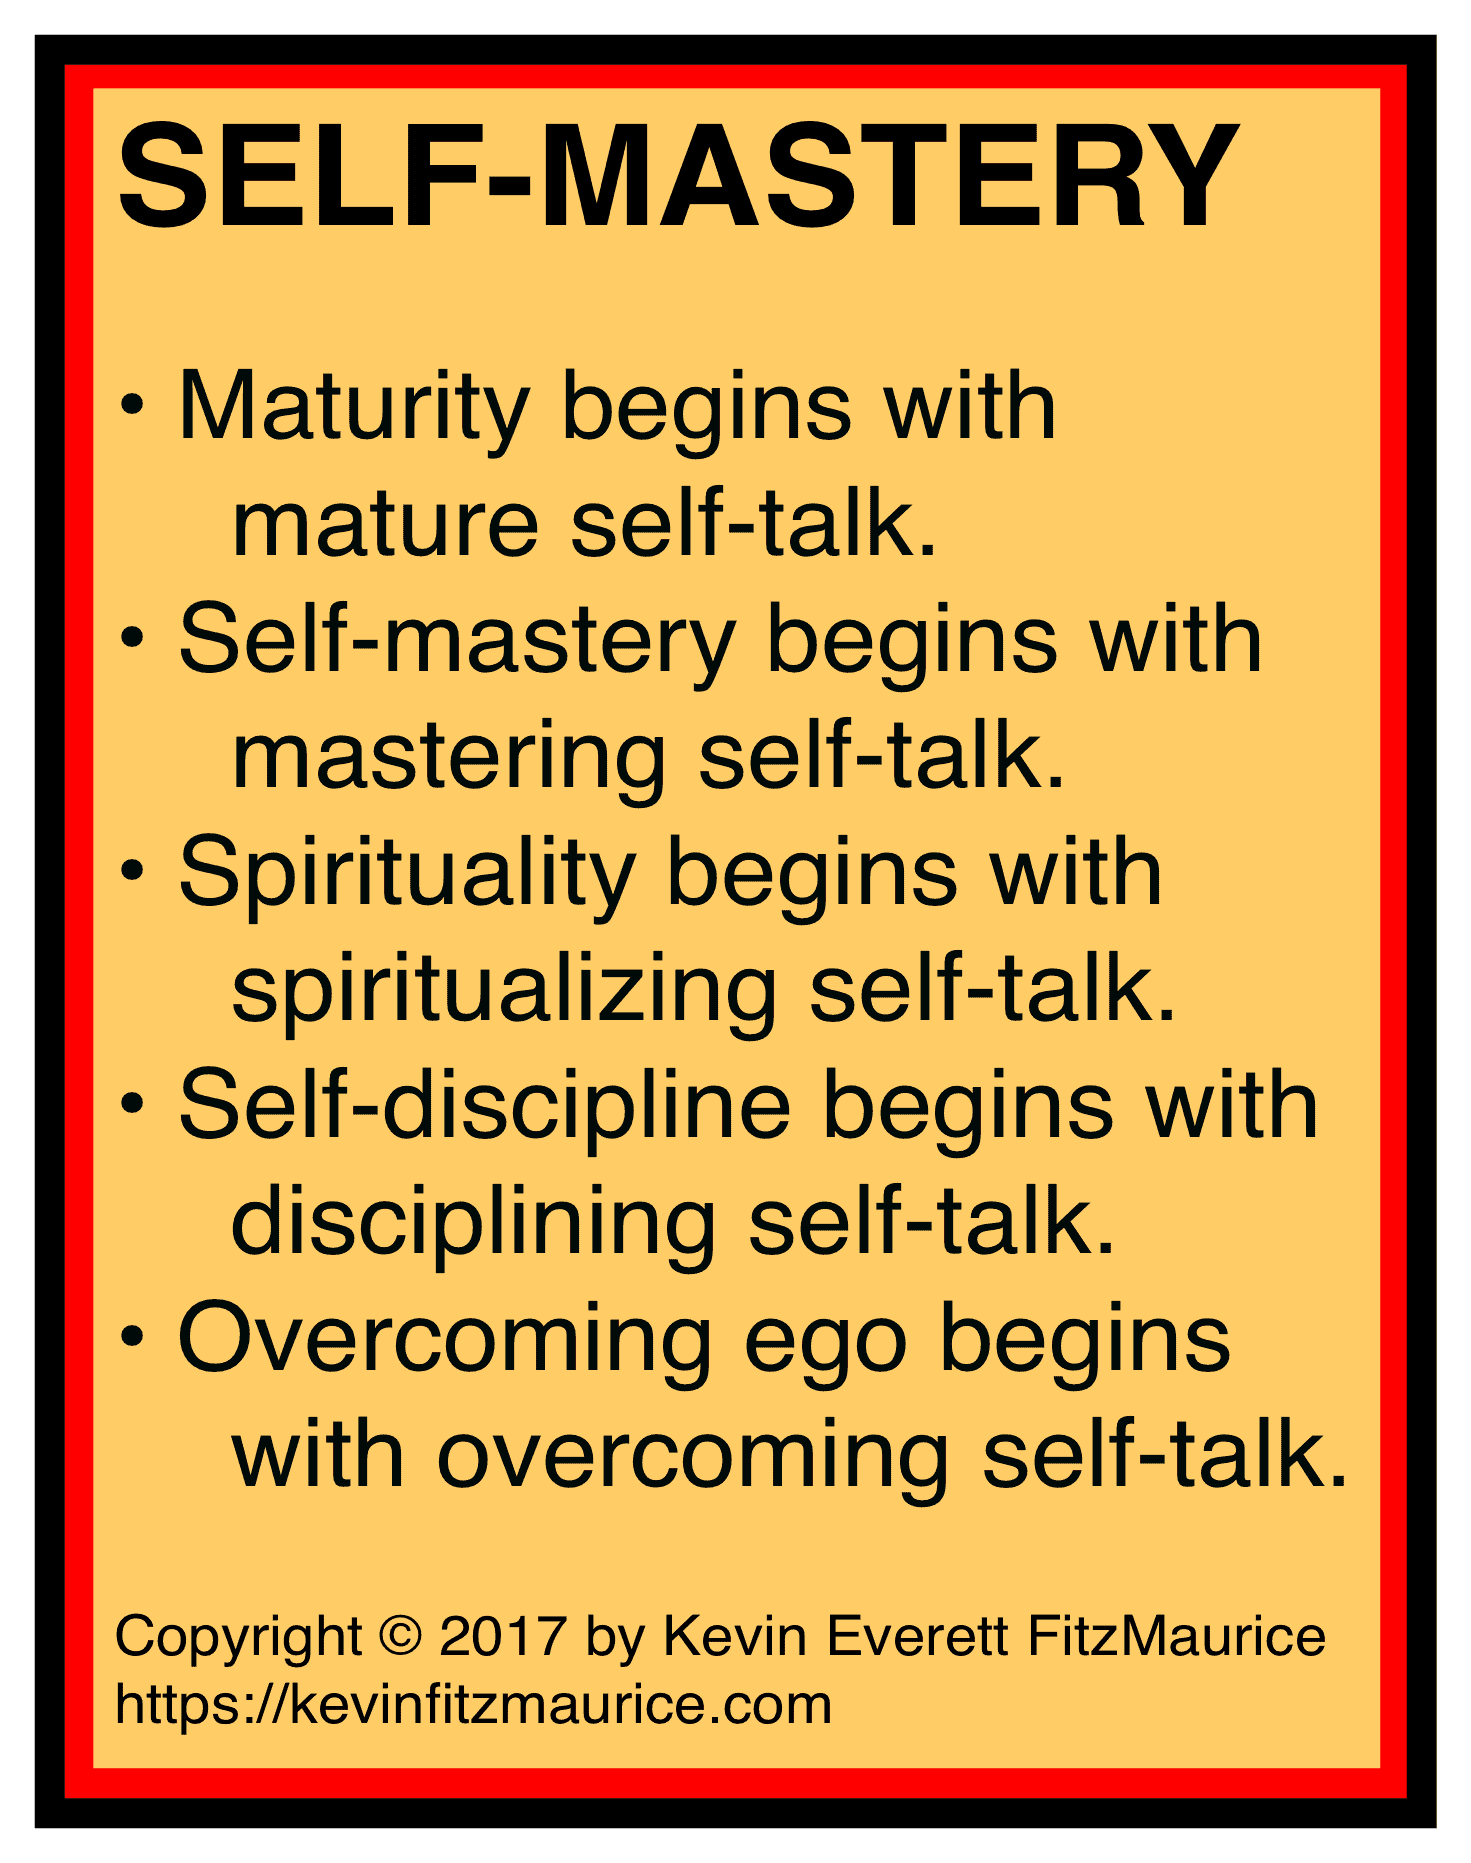 Self-mastery begins with